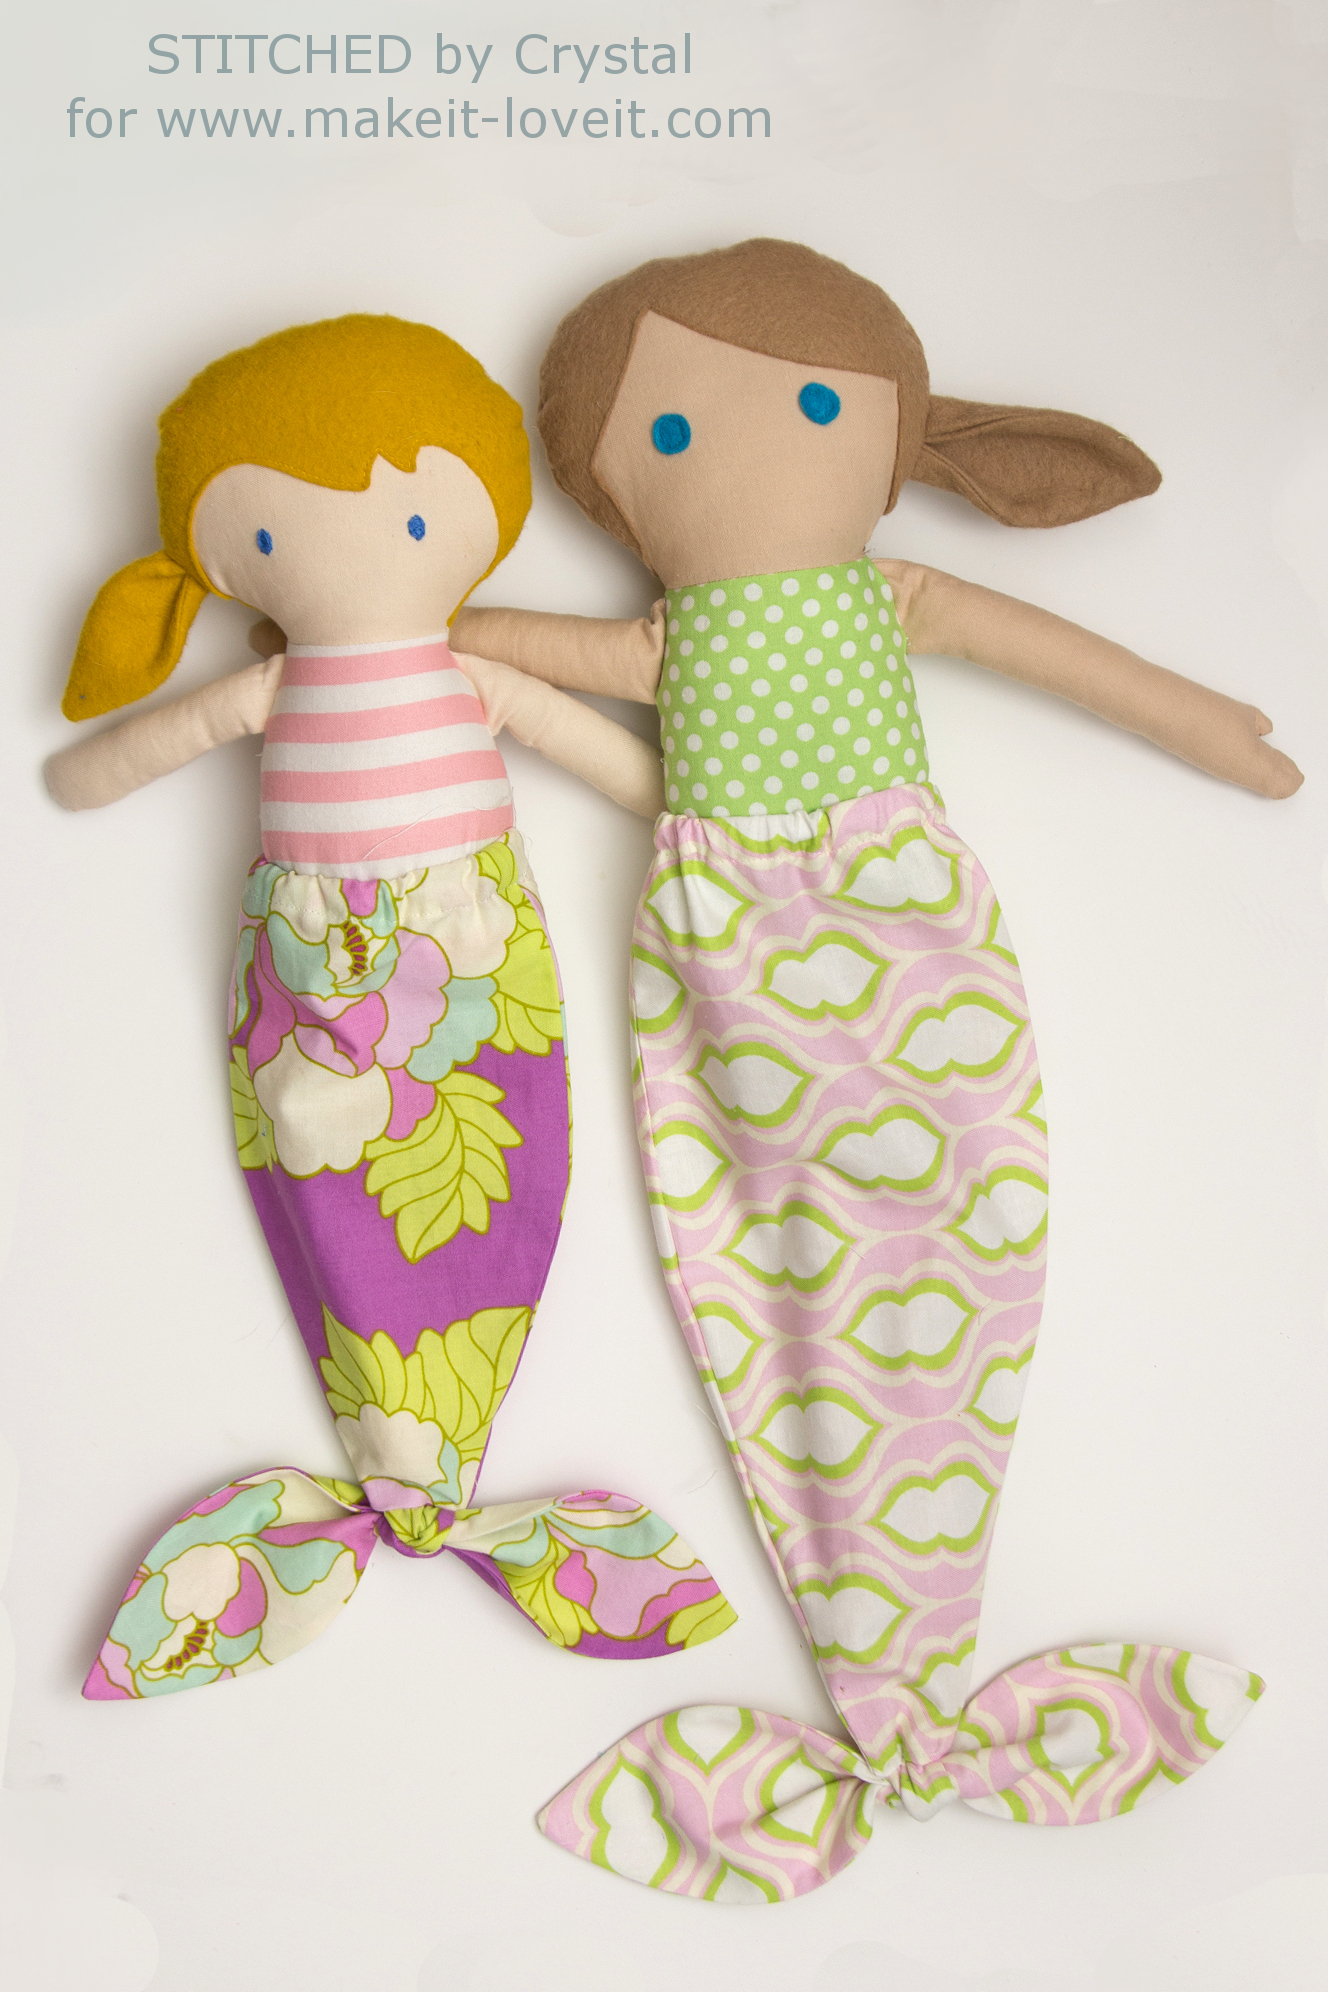 Sew a Mermaid Tail For Any Size Doll! | via www.makeit-loveit.com